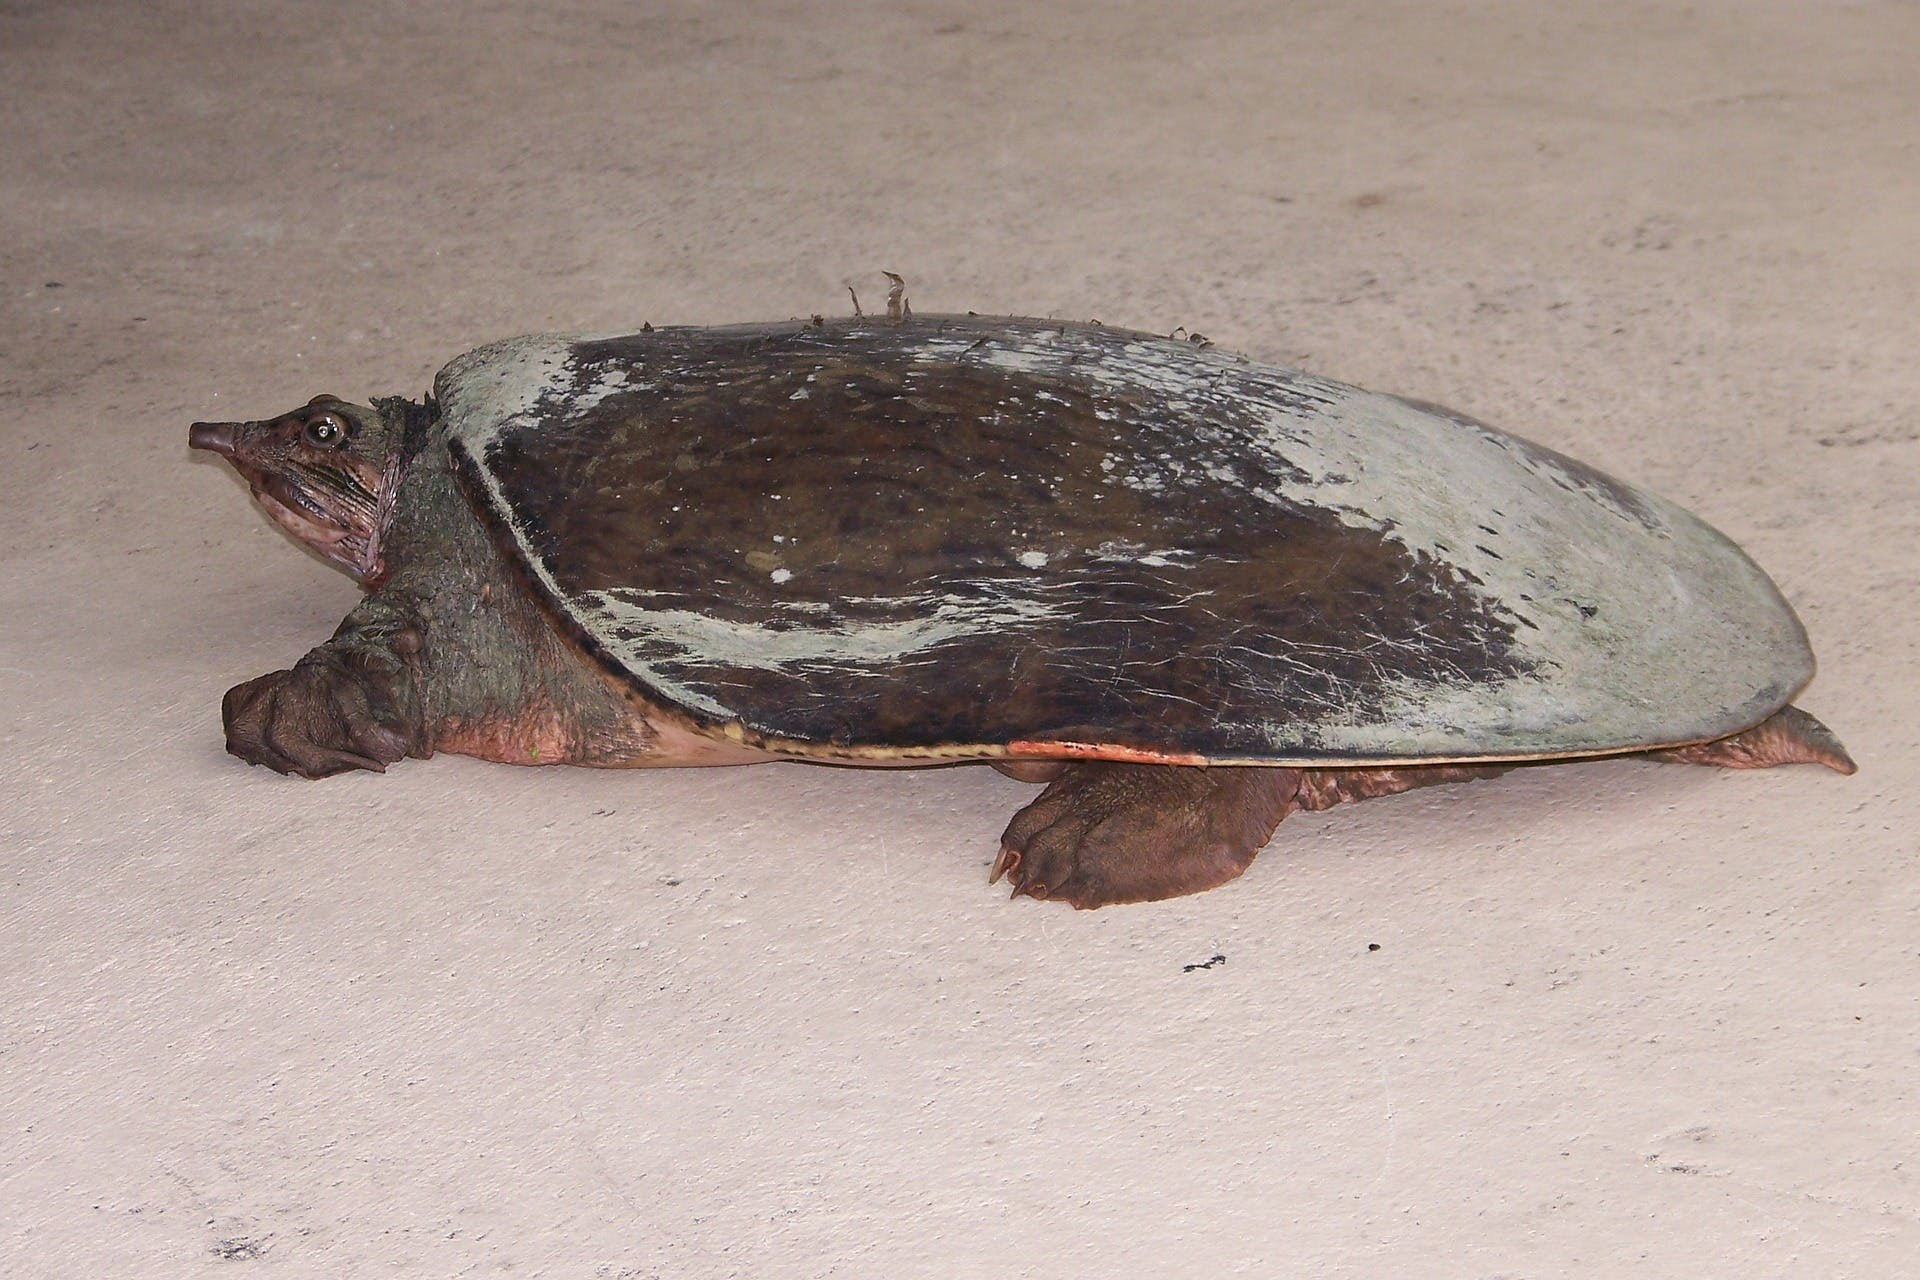 This is a softshell turtle